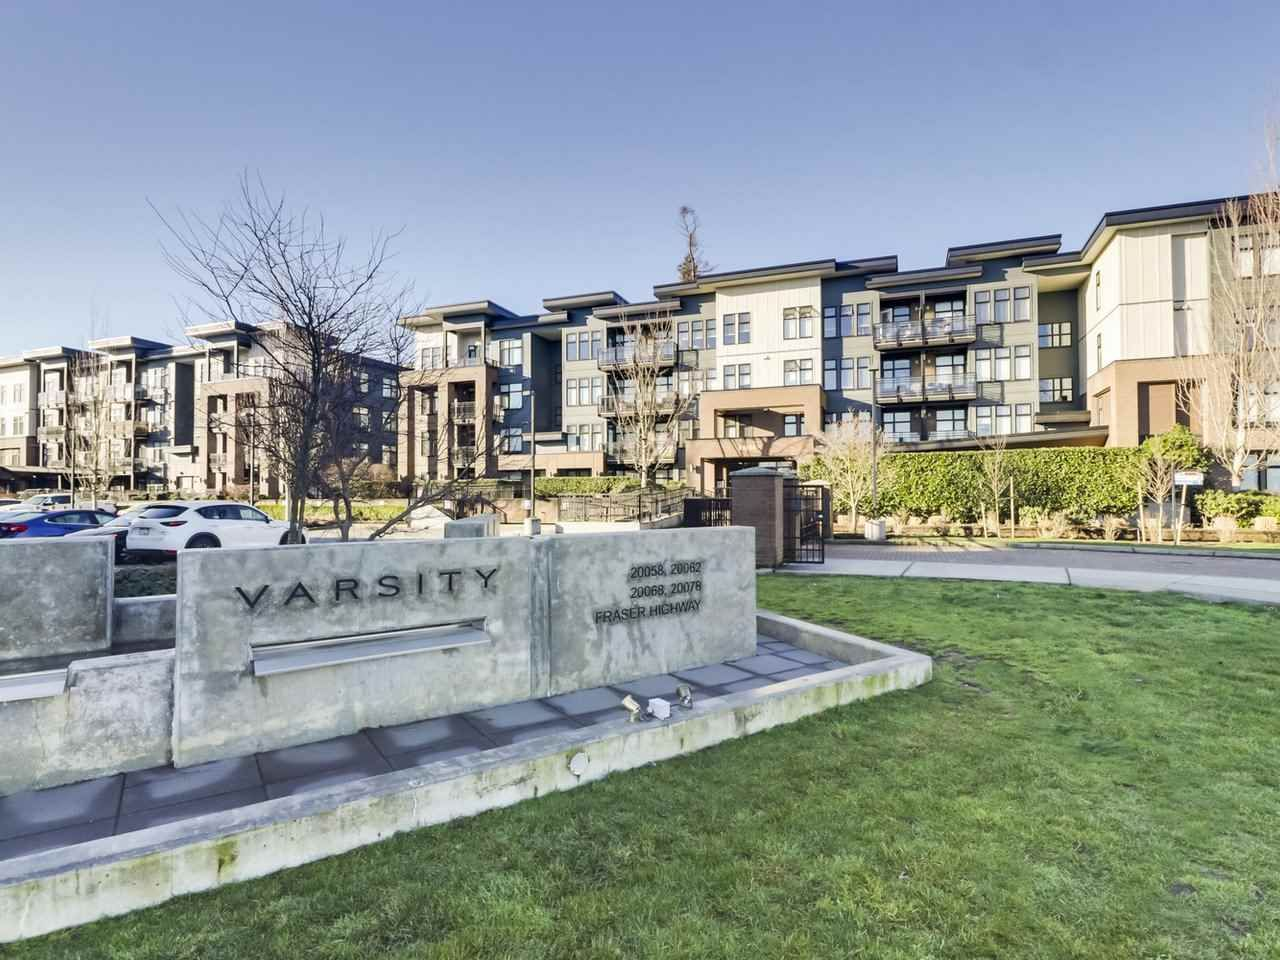 """Main Photo: 109 20068 FRASER Highway in Langley: Langley City Condo for sale in """"Varsity"""" : MLS®# R2574684"""